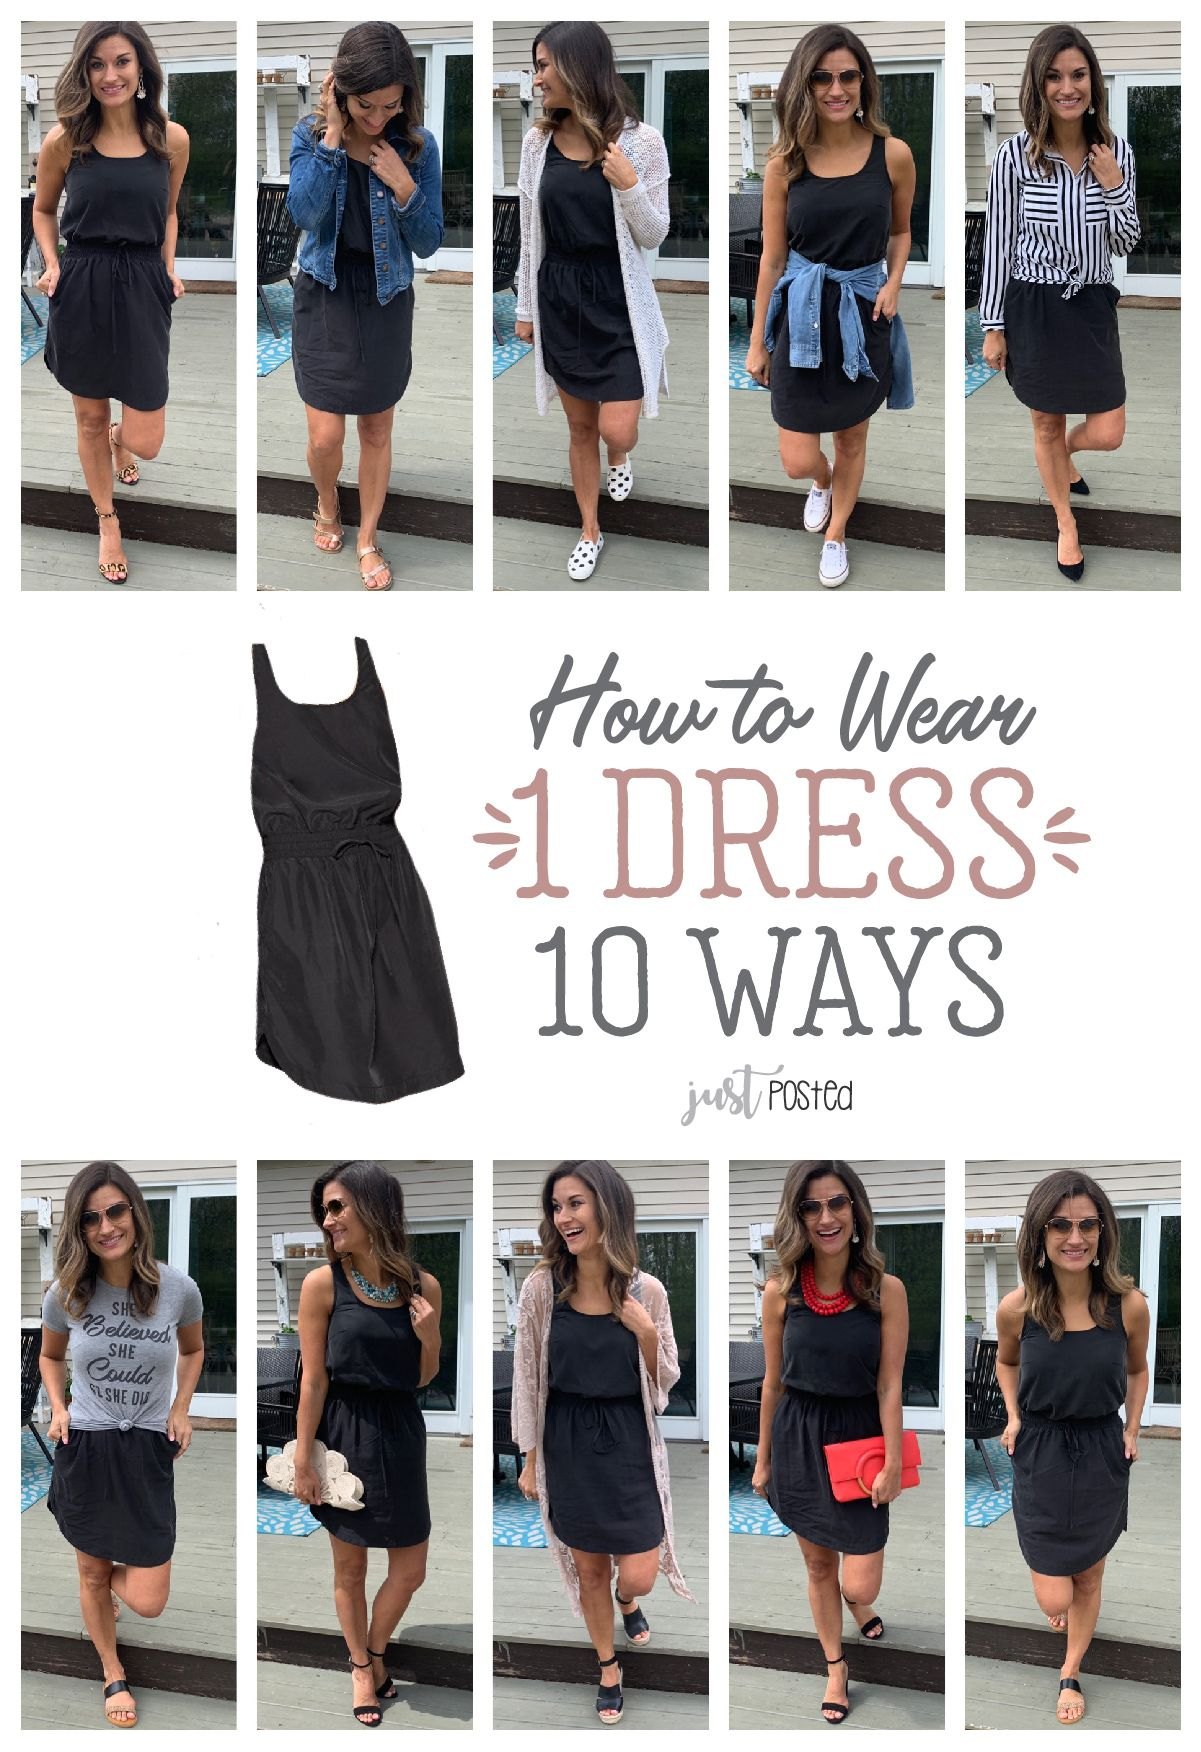 How to Wear and style 1 Black Dress 10 Different Ways - Every wardrobe needs